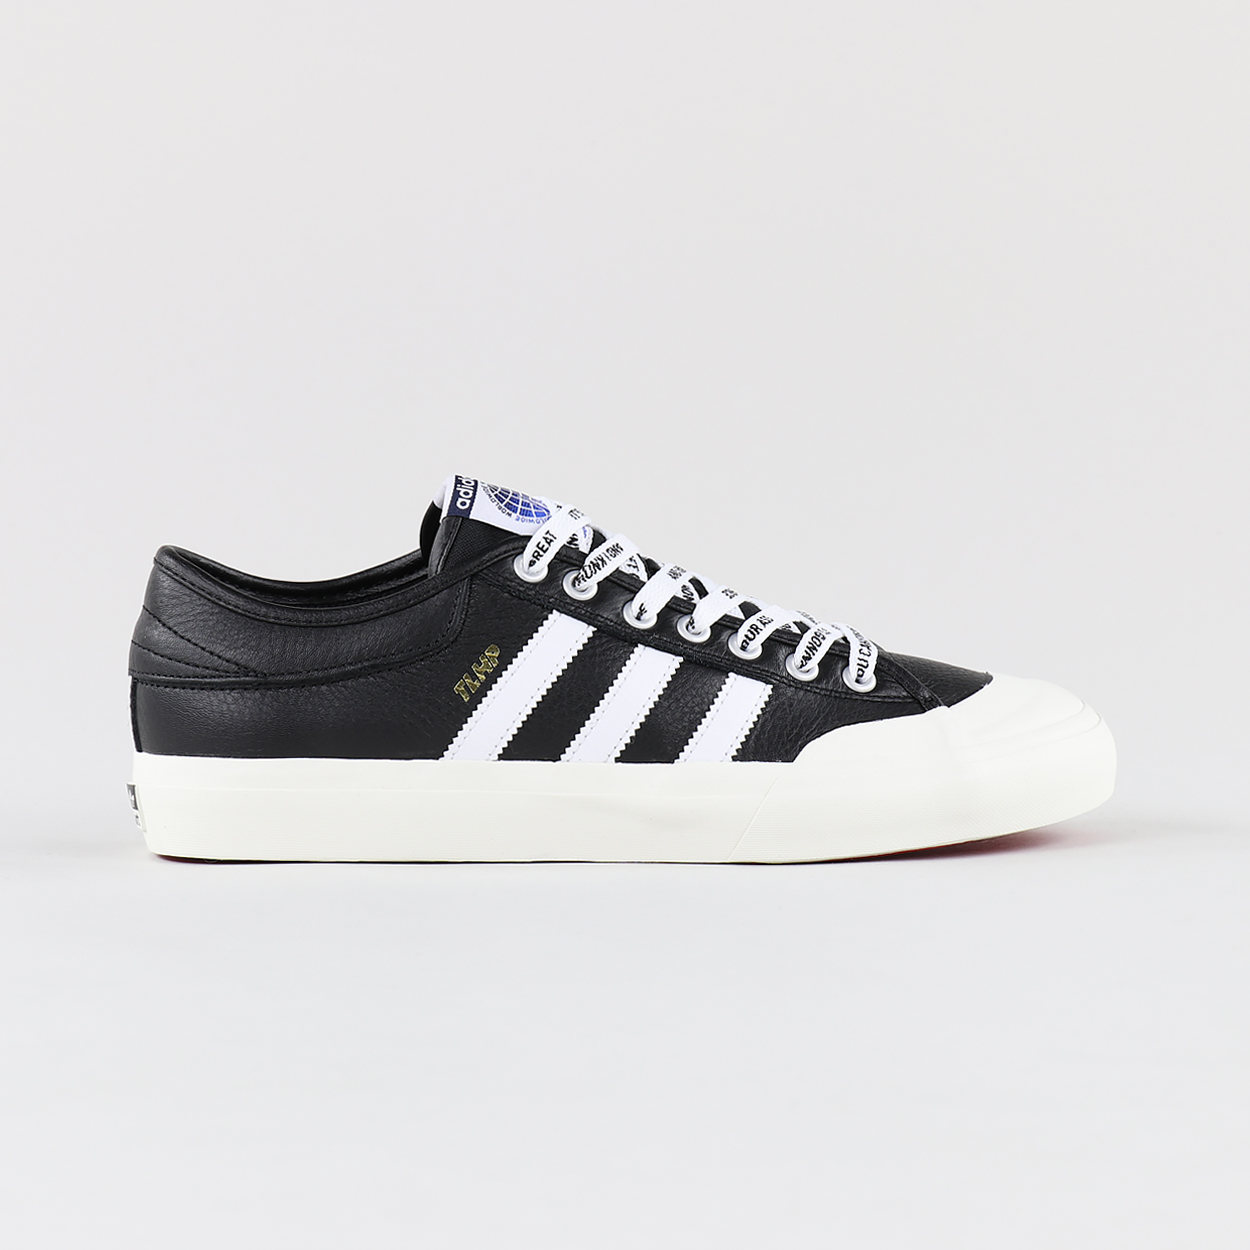 0b74dc29e78 Adidas Skateboarding x Trap Lord ColabMatchcourt Shoes Black Whit £46.65